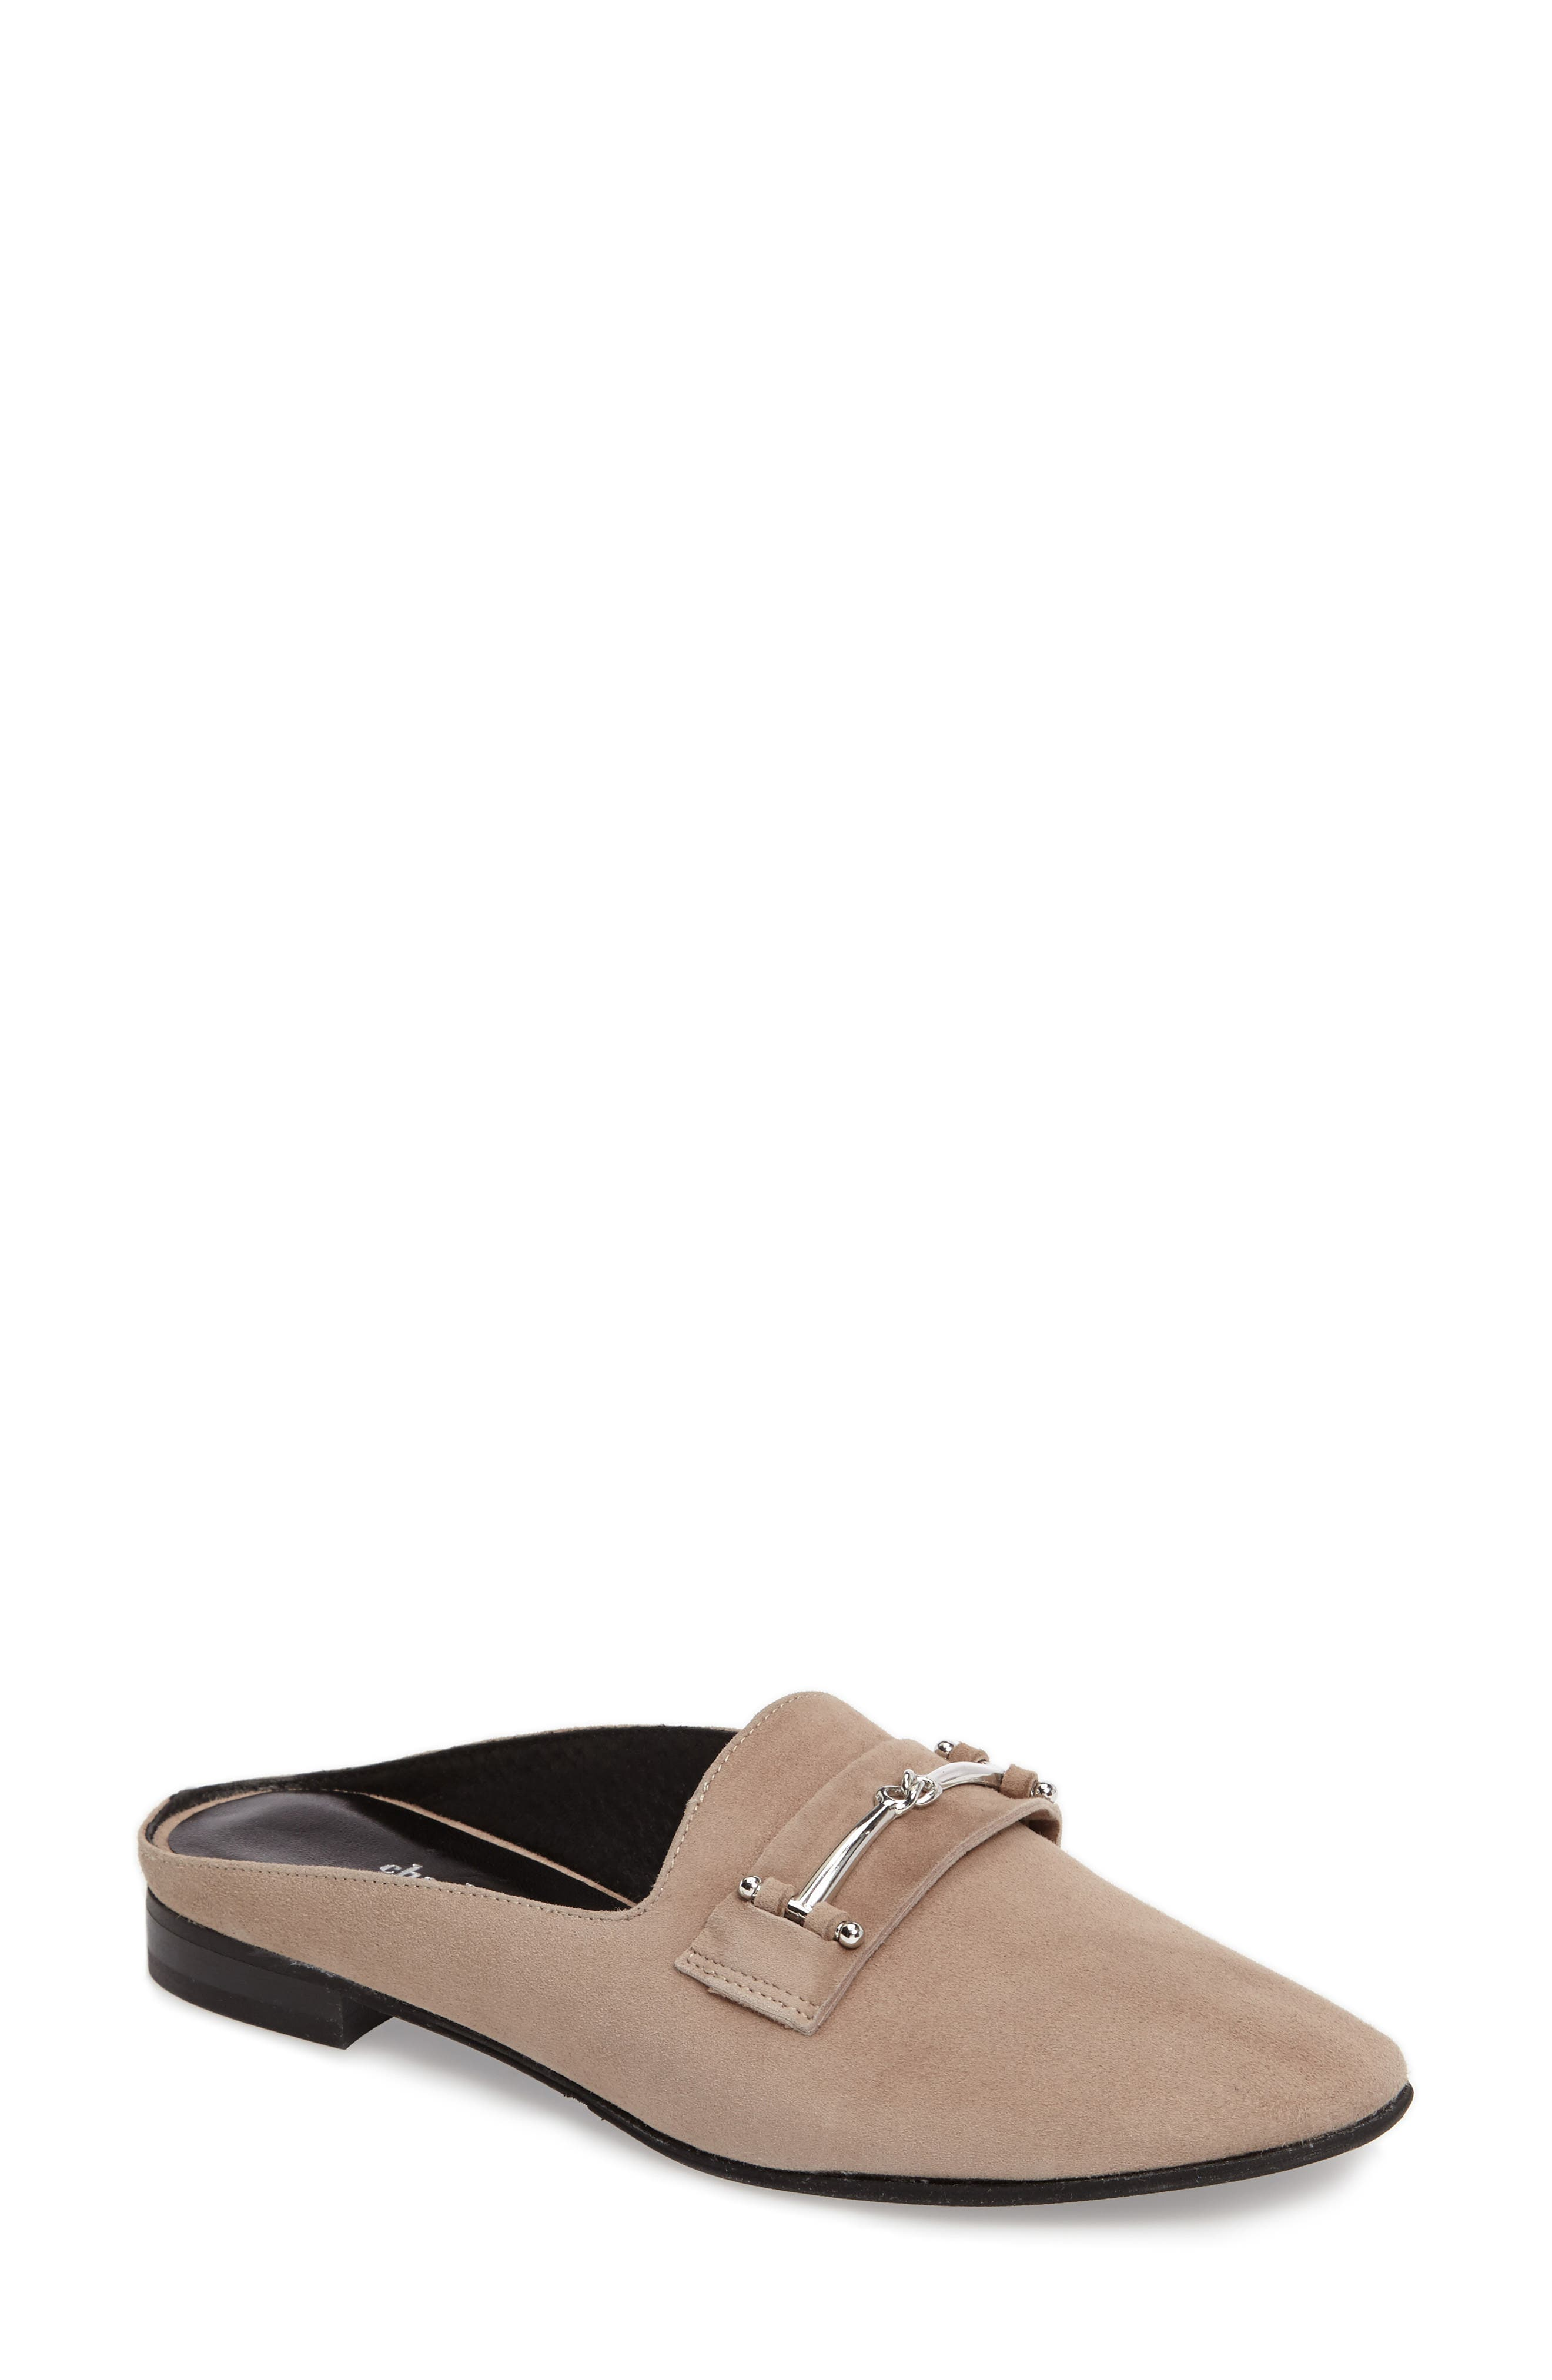 Alternate Image 1 Selected - Charles David Melody Loafer Mule (Women)